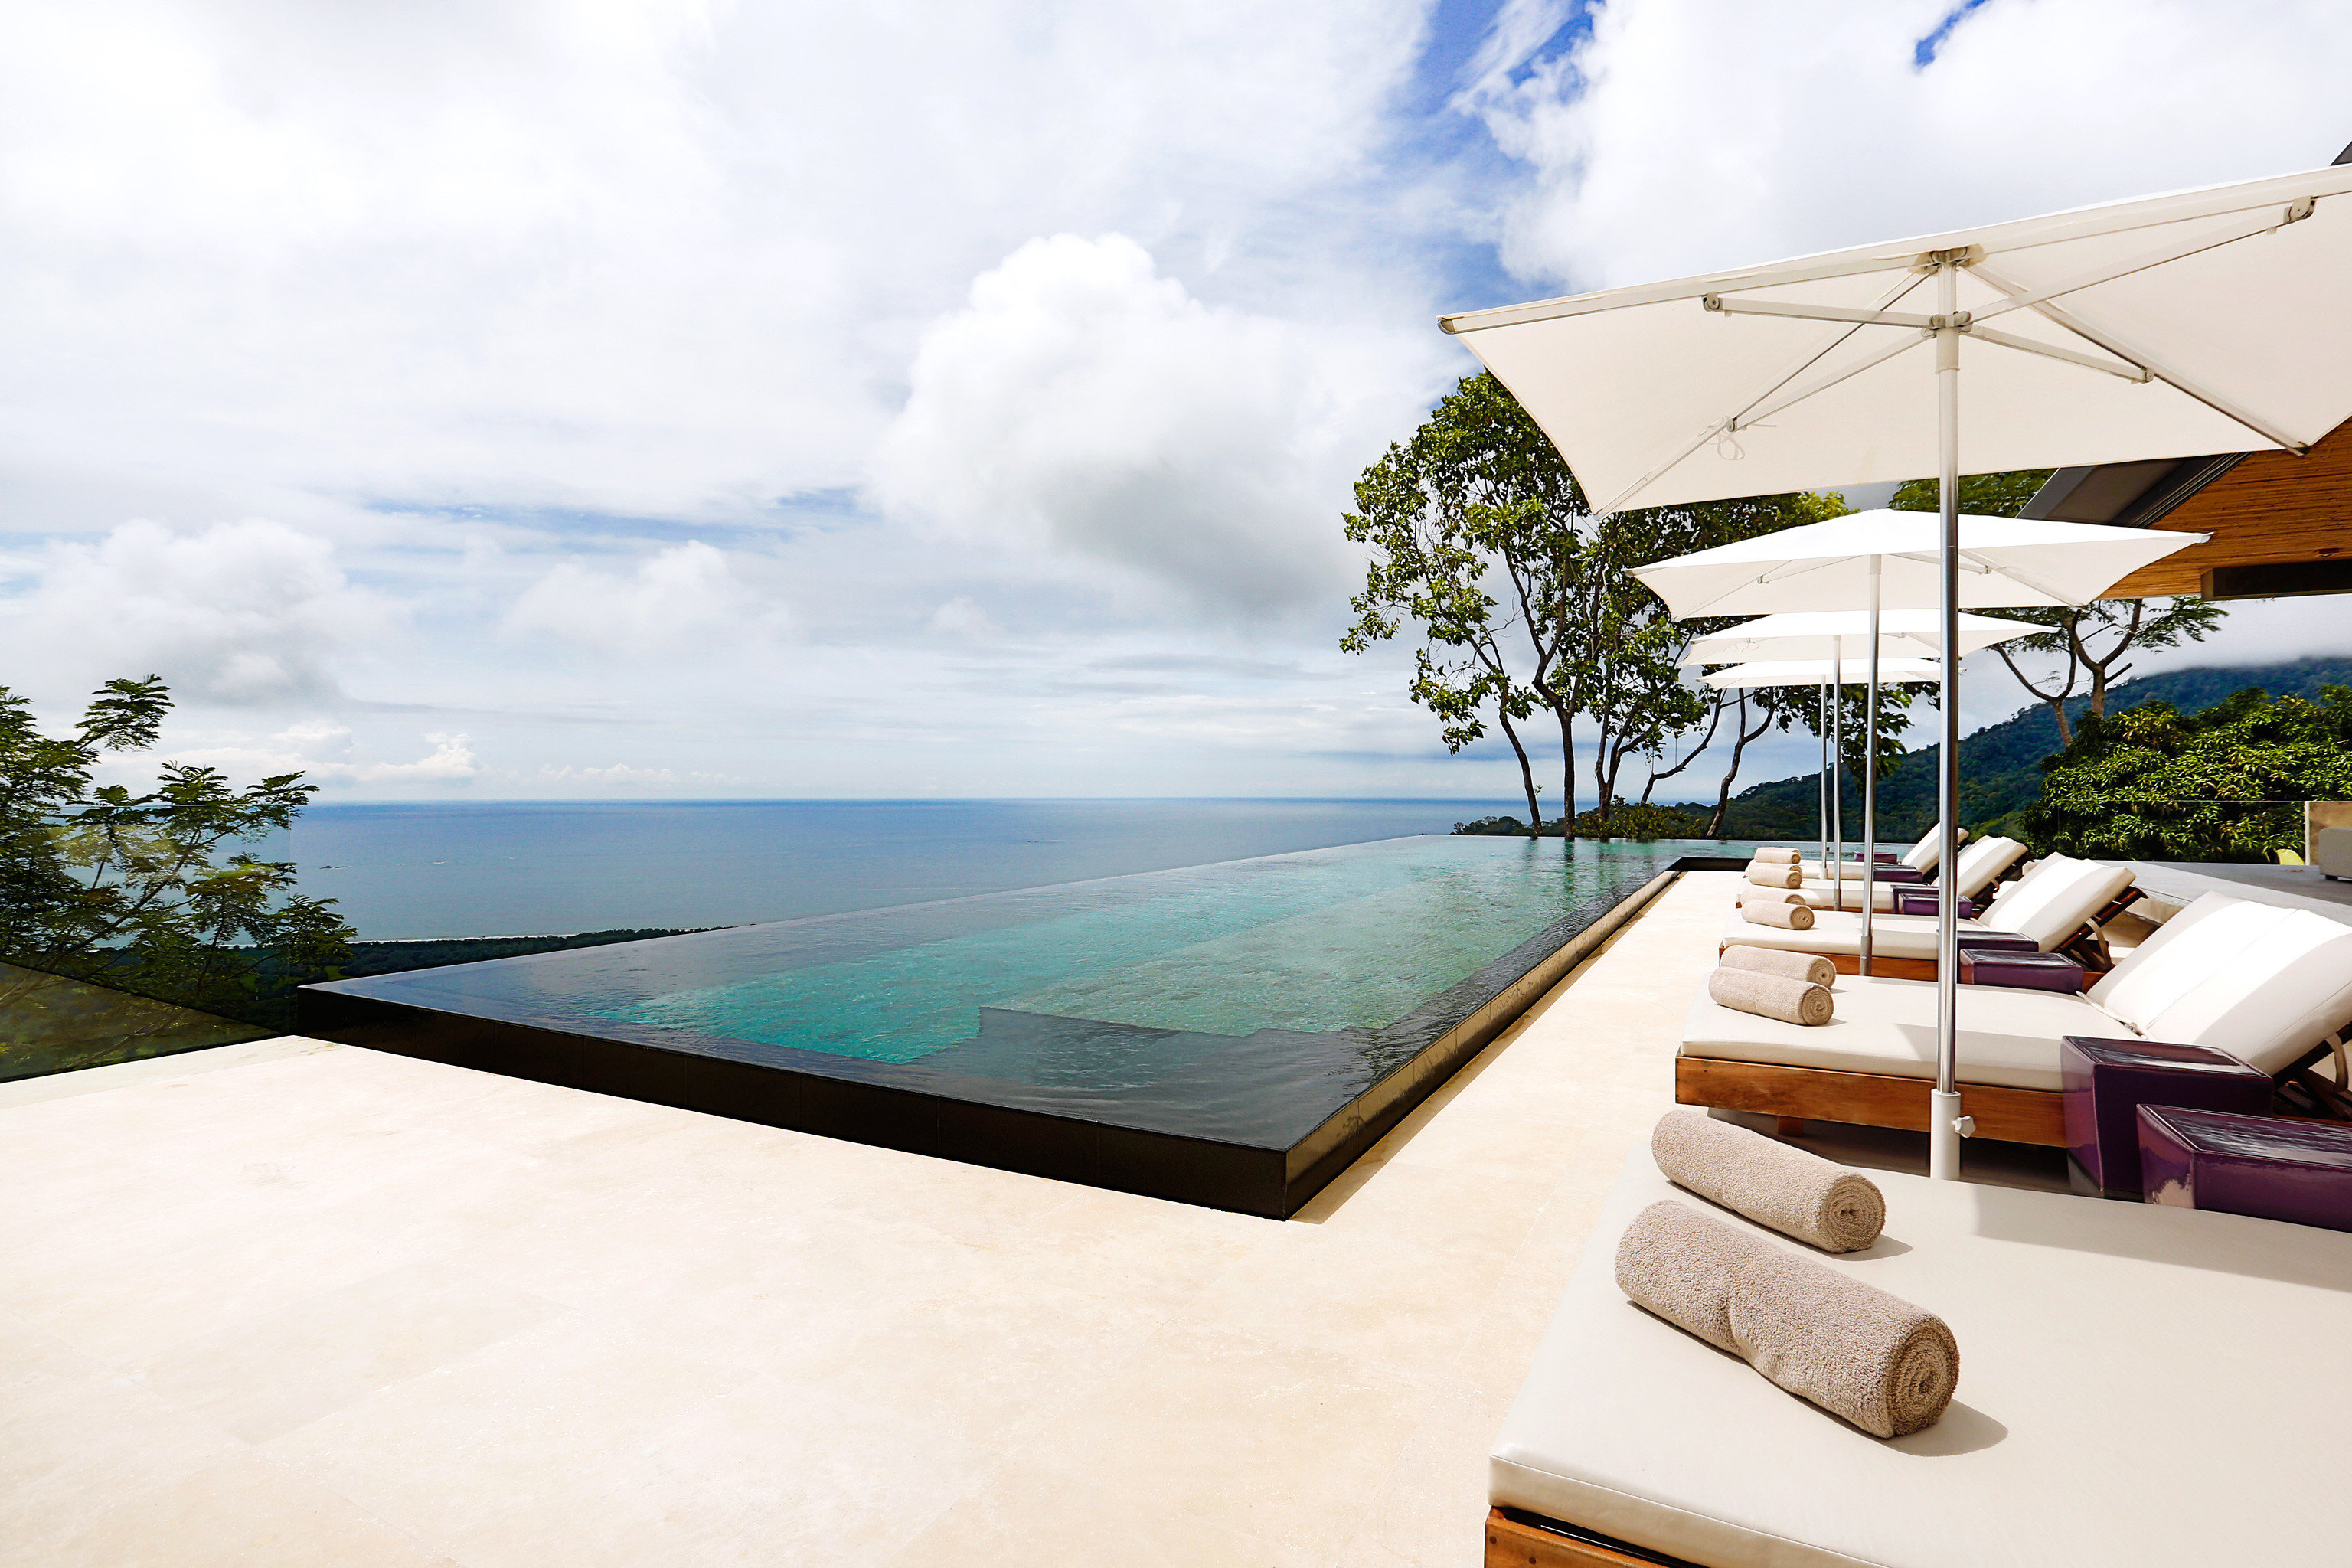 Adult-only Boutique Hotels Modern Pool Resort Romance Romantic sky outdoor property vacation Sea caribbean Ocean swimming pool estate Beach Villa bay Coast